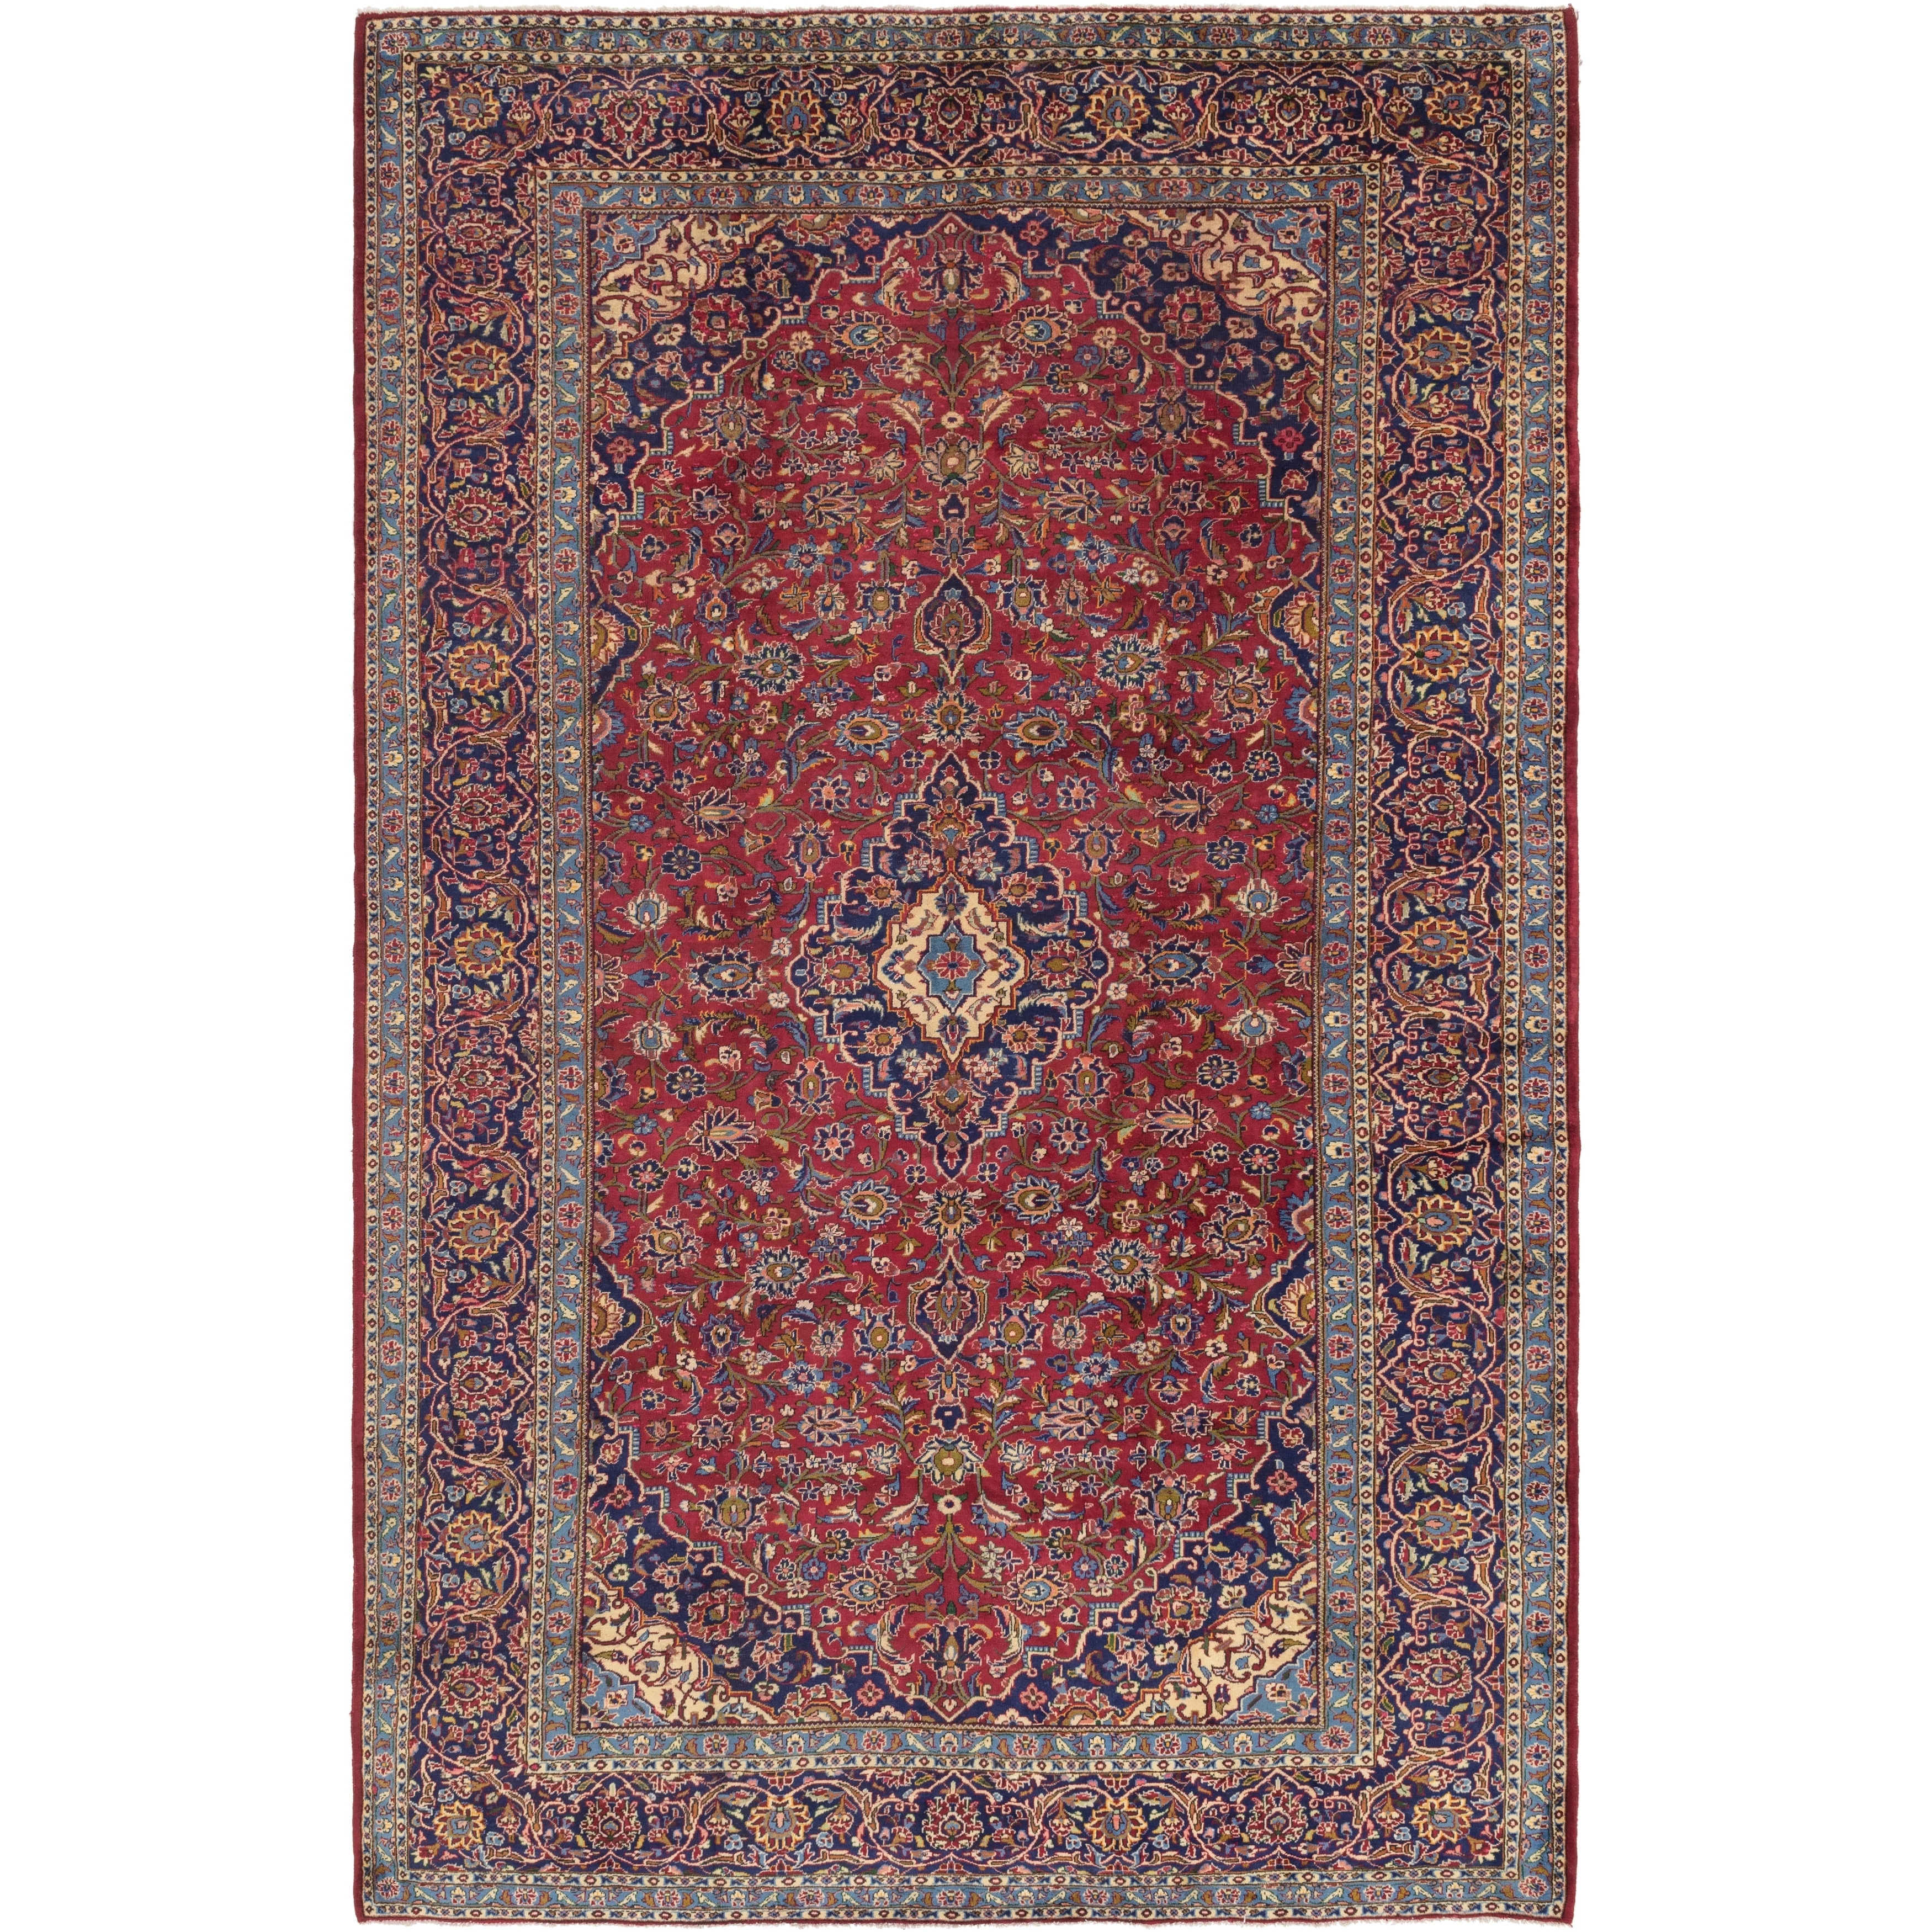 Hand Knotted Kashan Semi Antique Wool Area Rug - 9 10 x 15 10 (Red - 9 10 x 15 10)